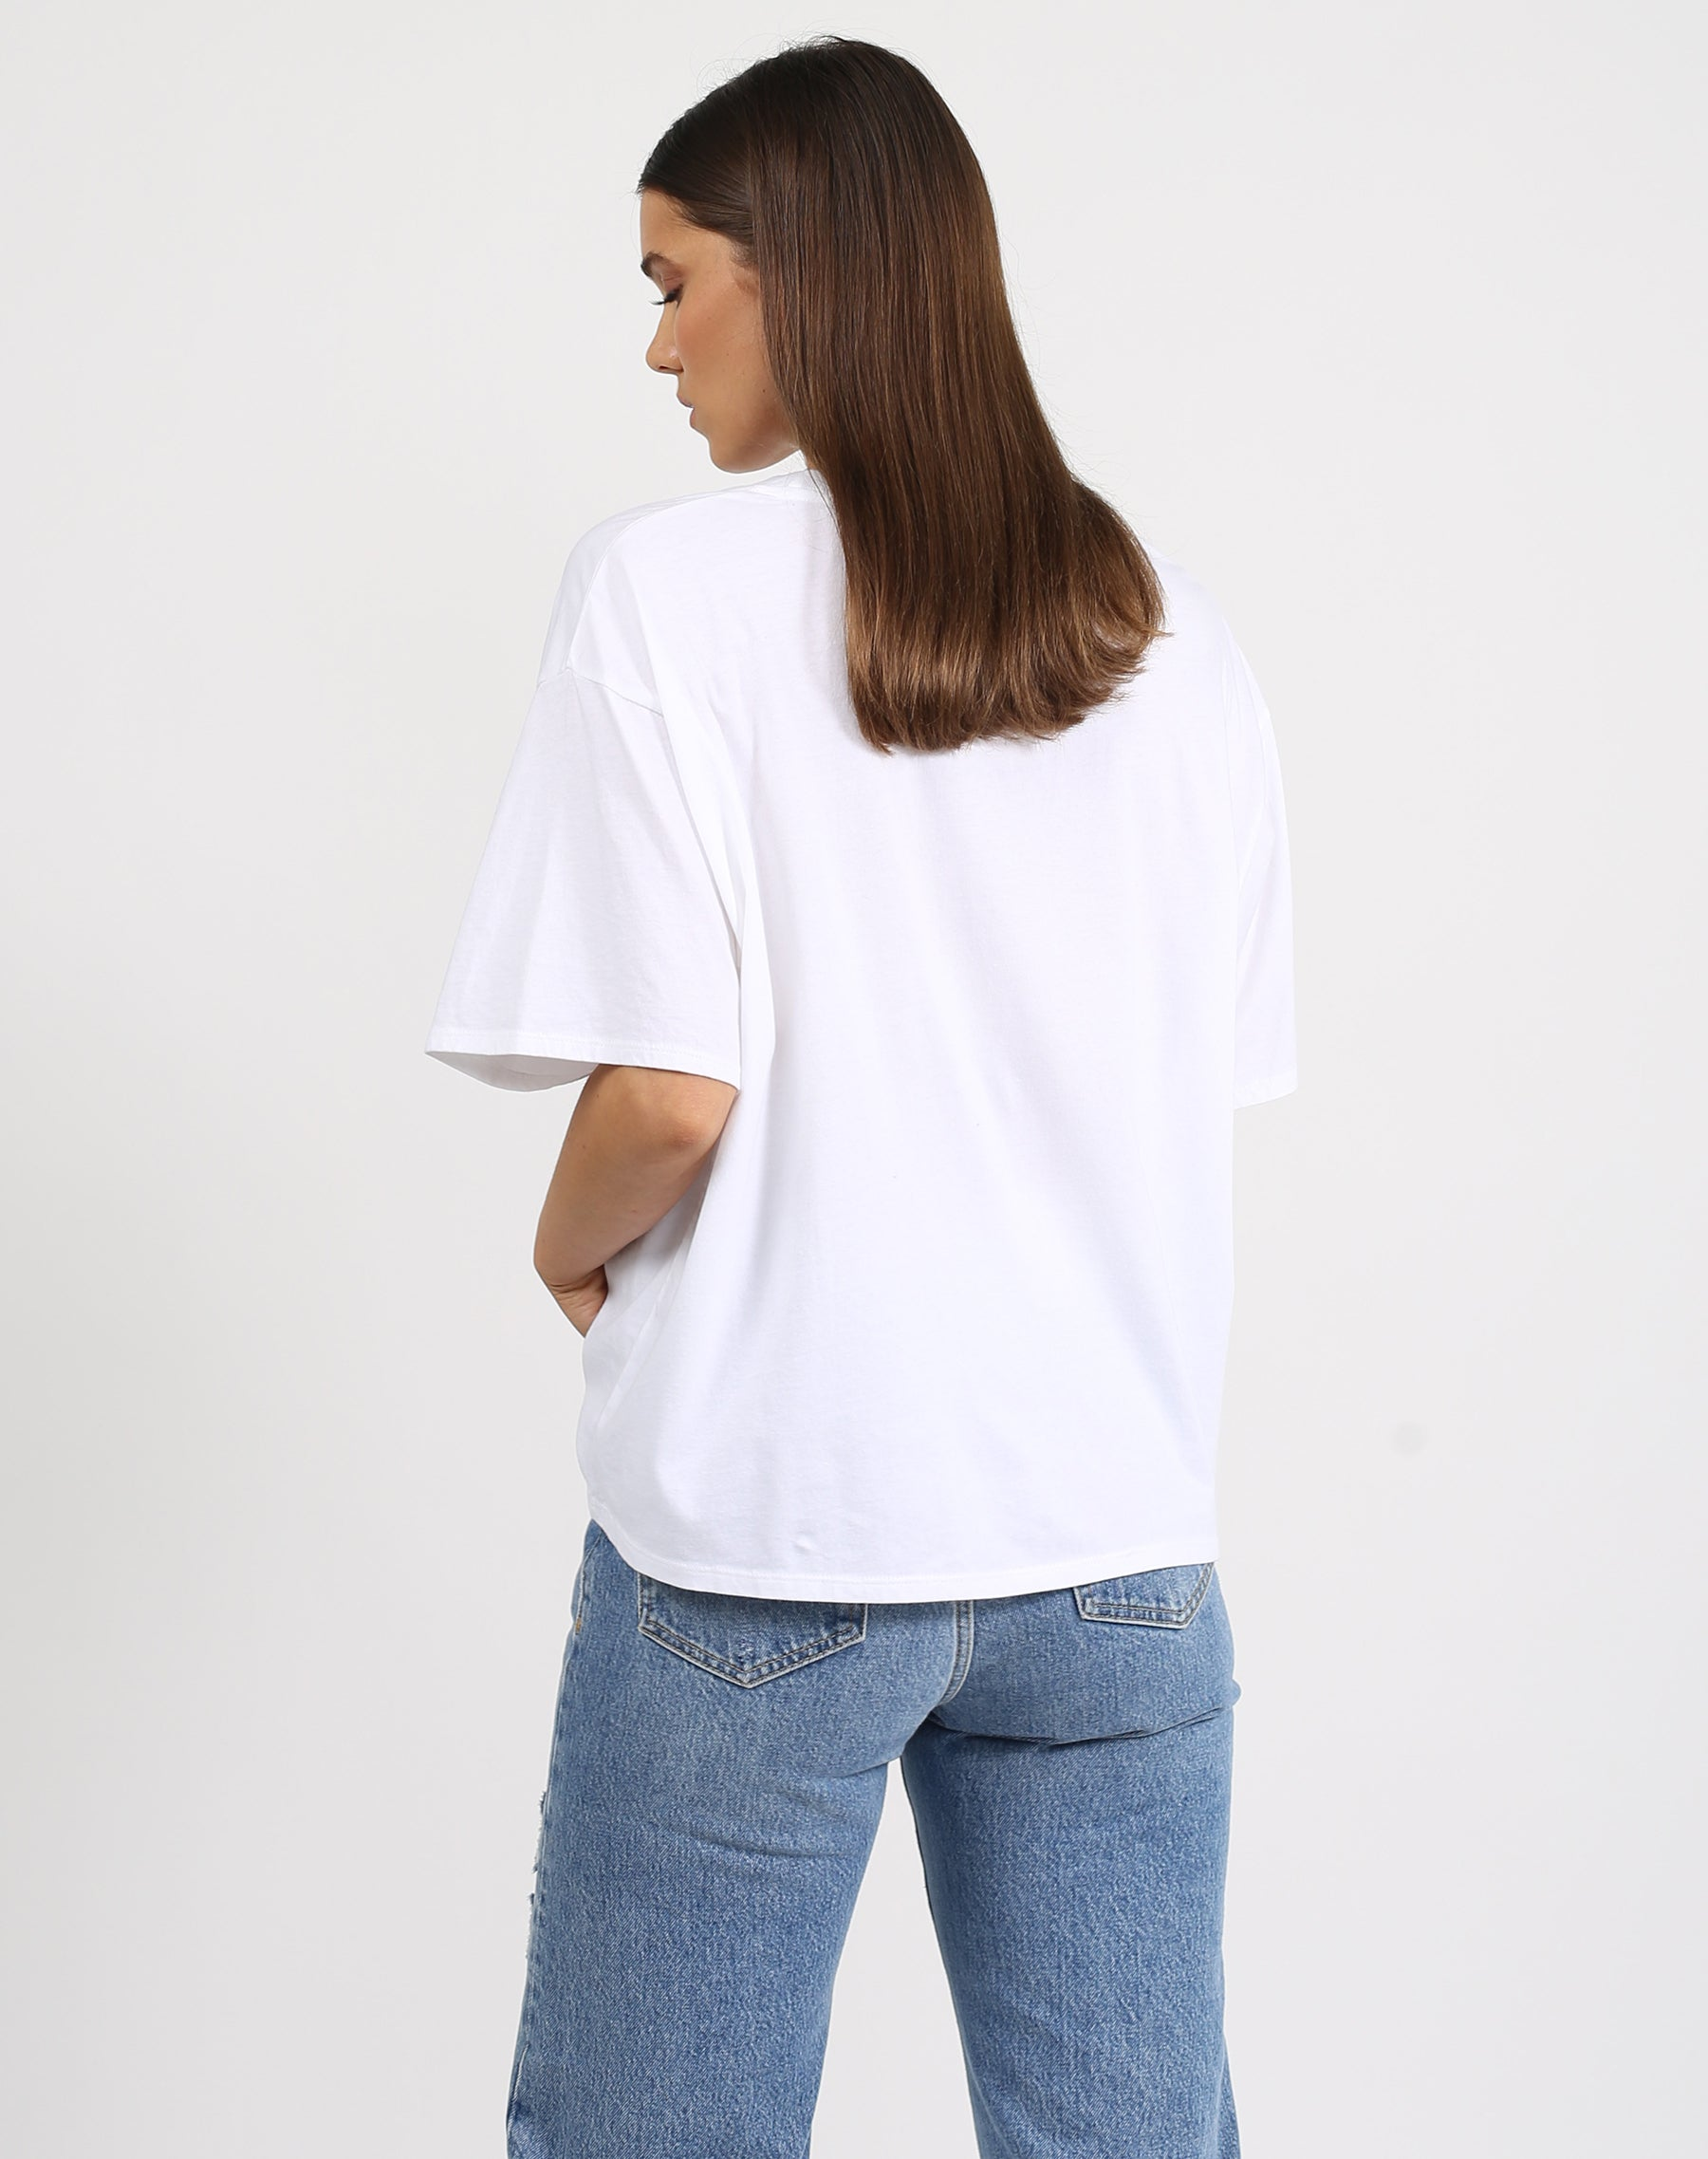 This is a photo of the back of a model wearing the uplift boxy tee crew neck in white by brunette the label.